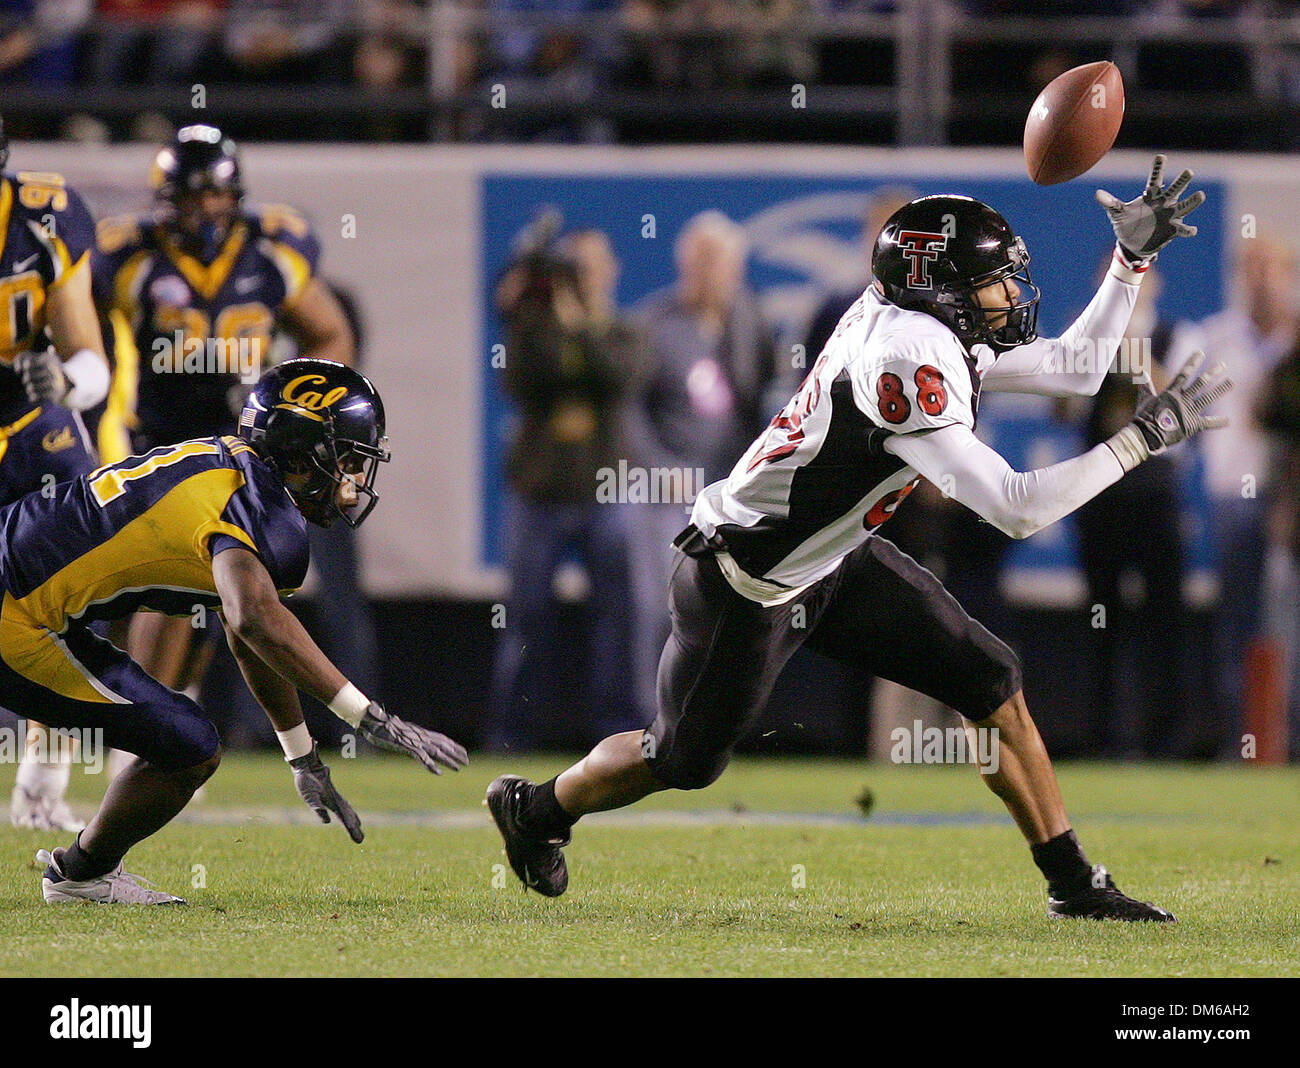 Dec 30, 2004; San Diego, CA, USA; NCAA College Football (Texas Tech 45, California 31) Texas Tech's JARRETT HICKS tries Thursday night Dec 30, 2004 in San Diego during the Holiday Bowl to come down with a pass as Cal's Harrison Smith tries to catch him - Stock Image